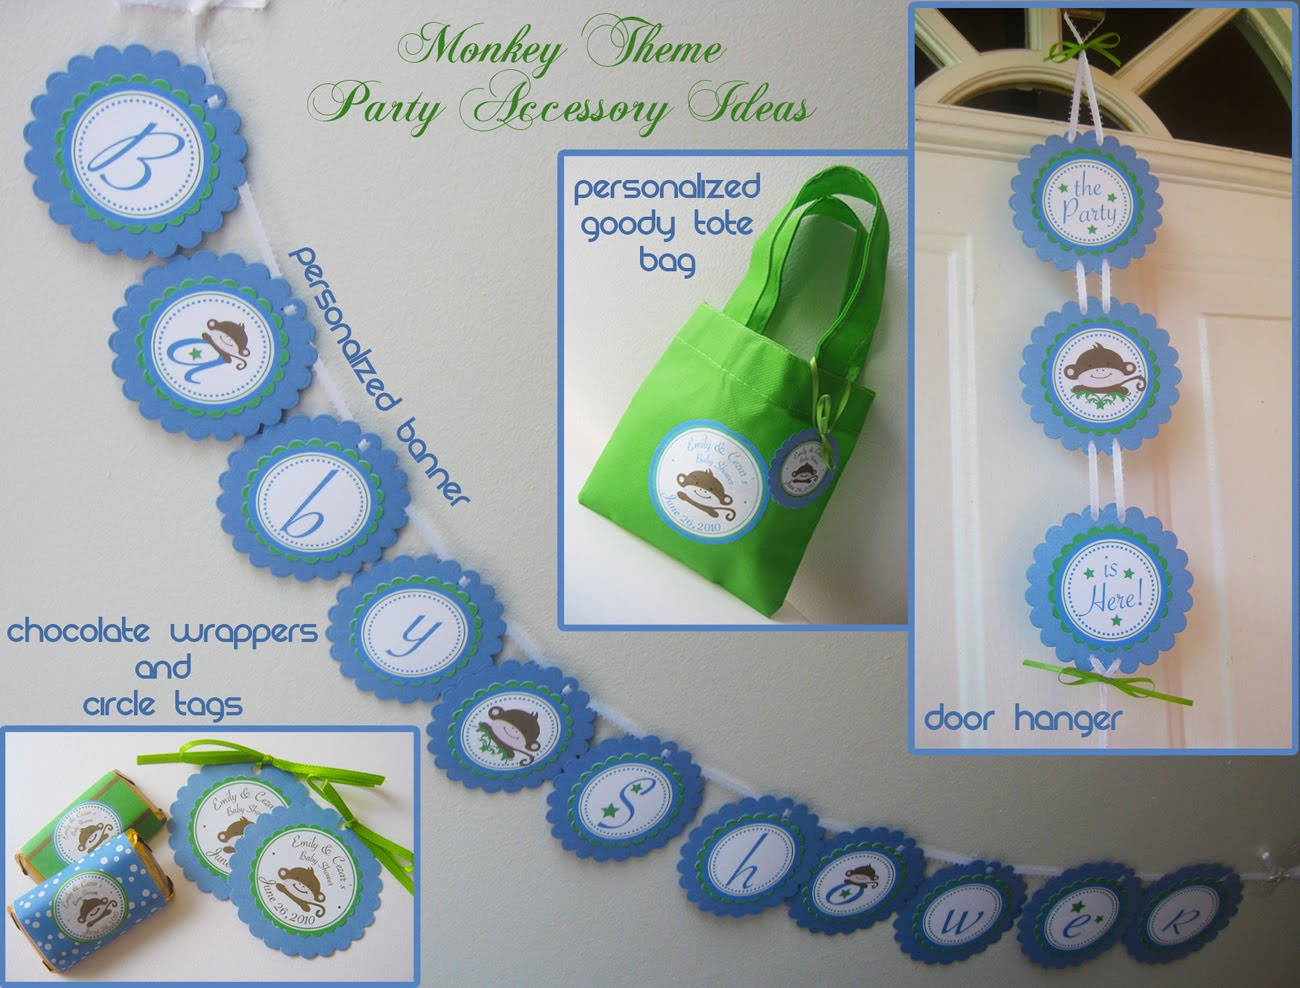 Monkey theme baby shower customize your party and make it memorable kroma design studio - Monkey baby shower favors ideas ...